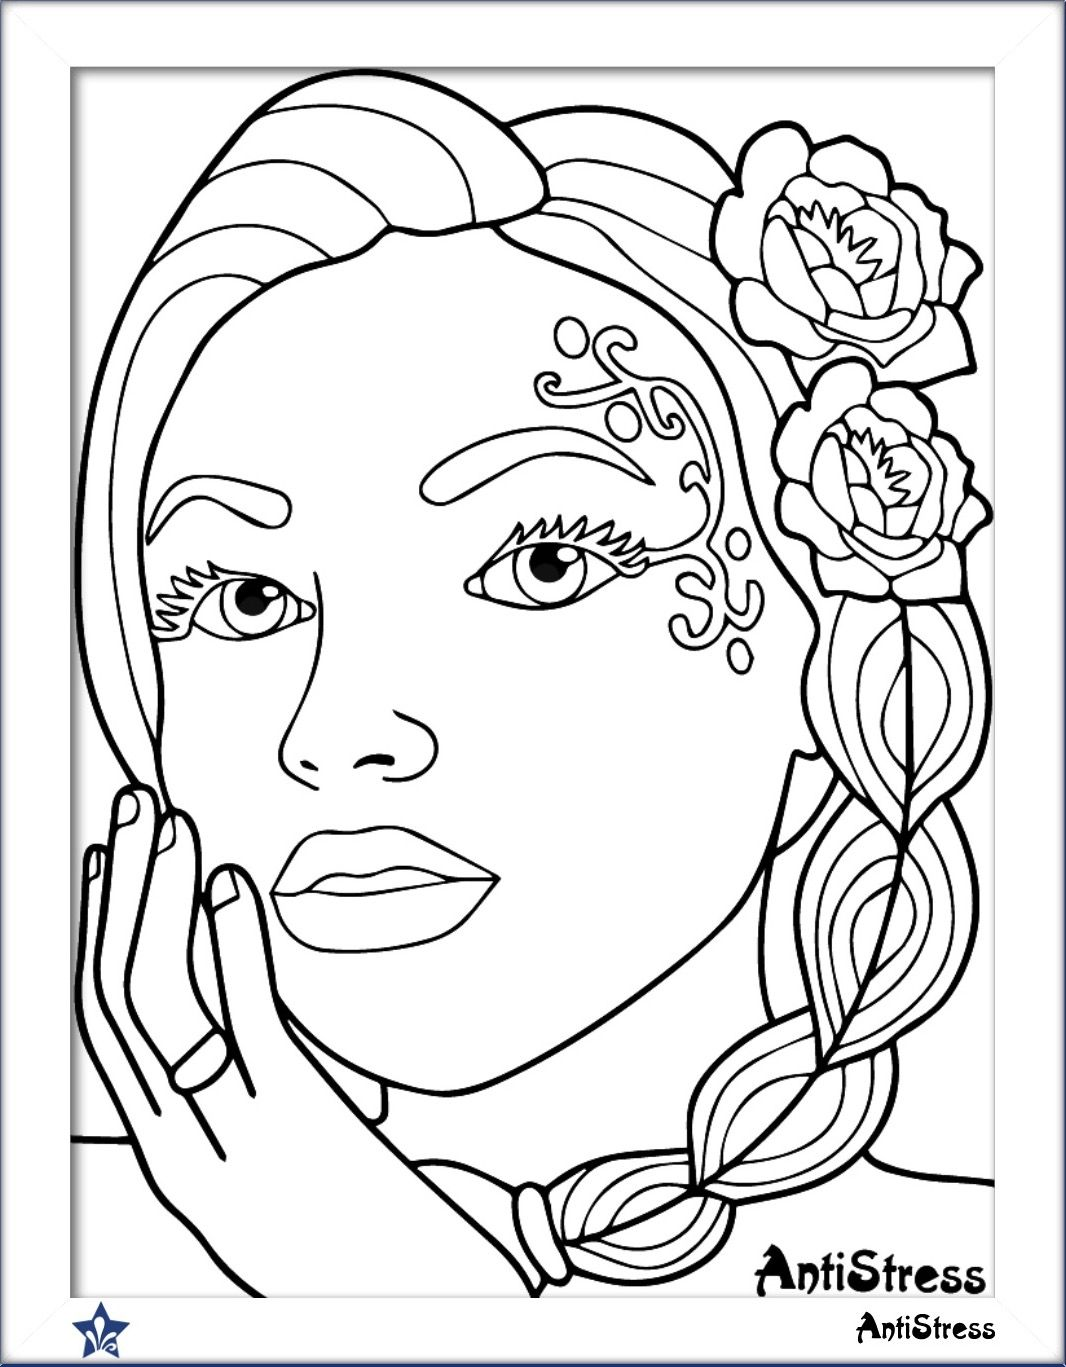 Color me | Coloring Pages for Adults | Pinterest